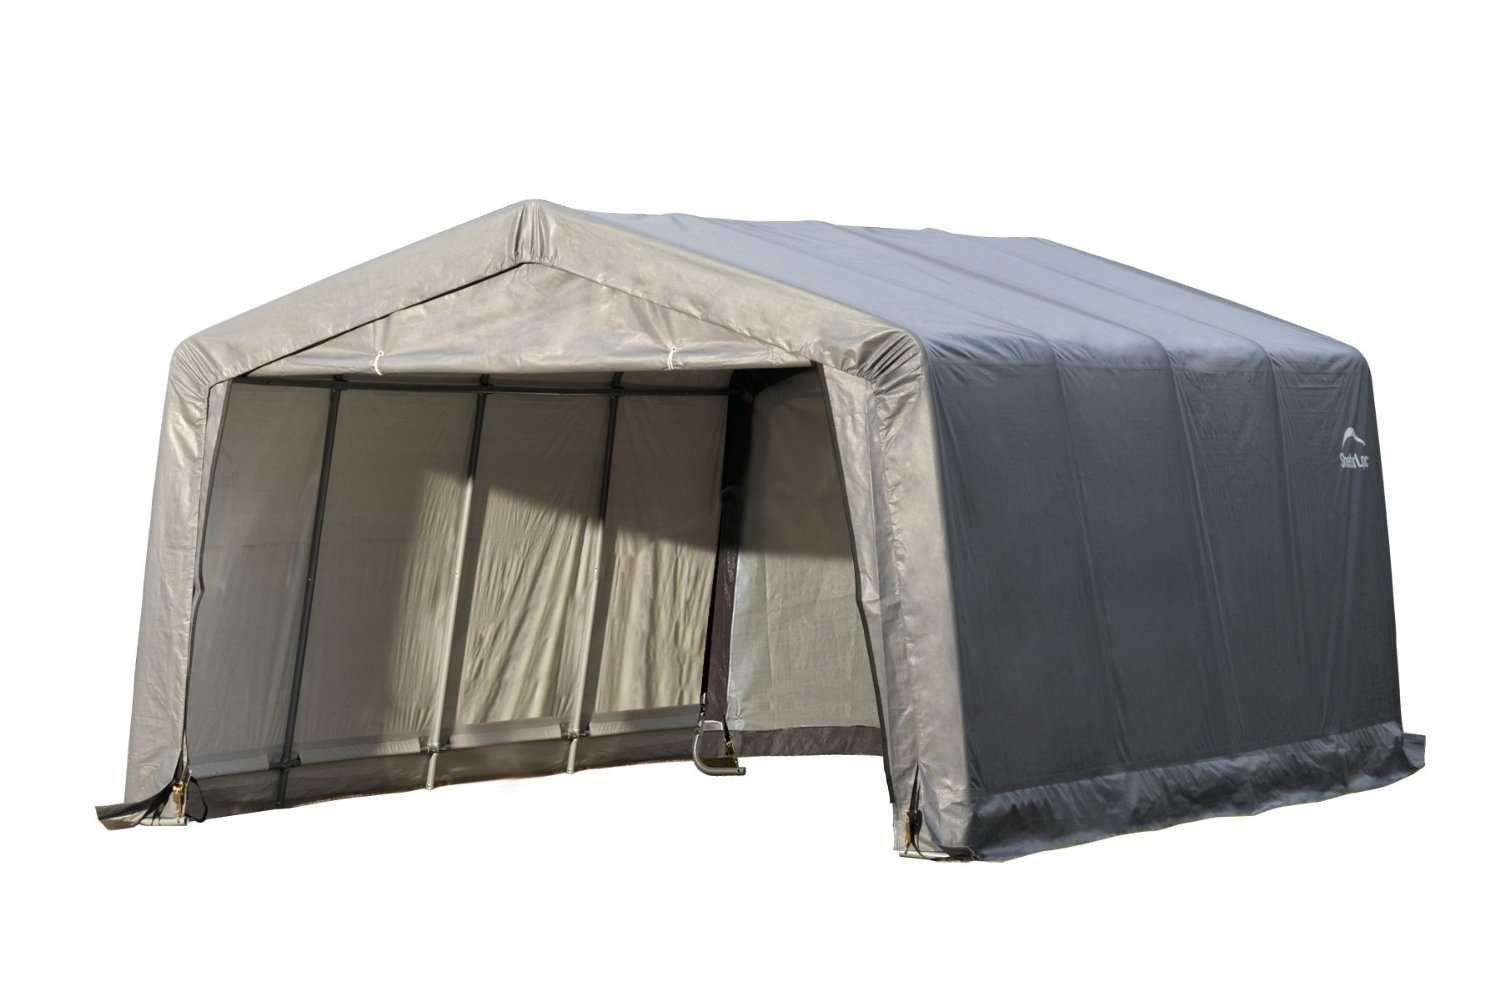 Garage-in-a-Box® Peak Style Shelter 12 x 16 x 8 ft., Grey